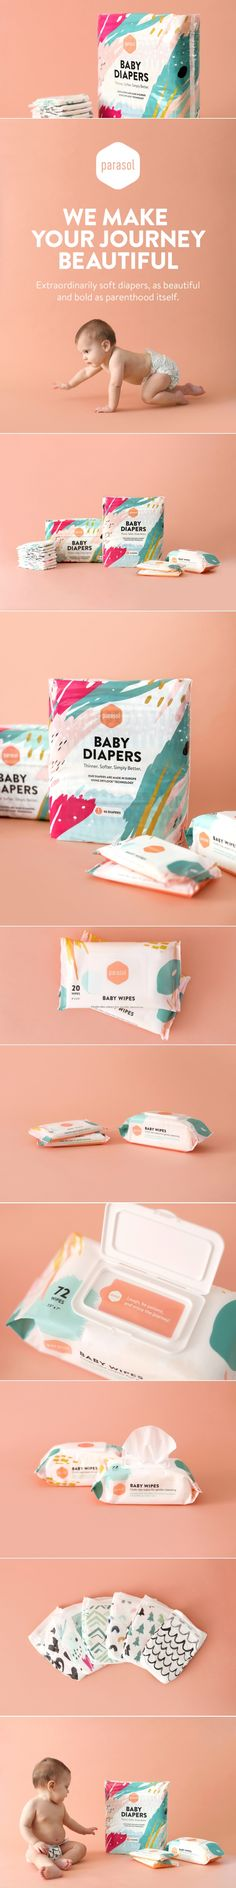 Parasol Co Diapers + Wipes — The Dieline | Packaging & Branding Design & Innovation News